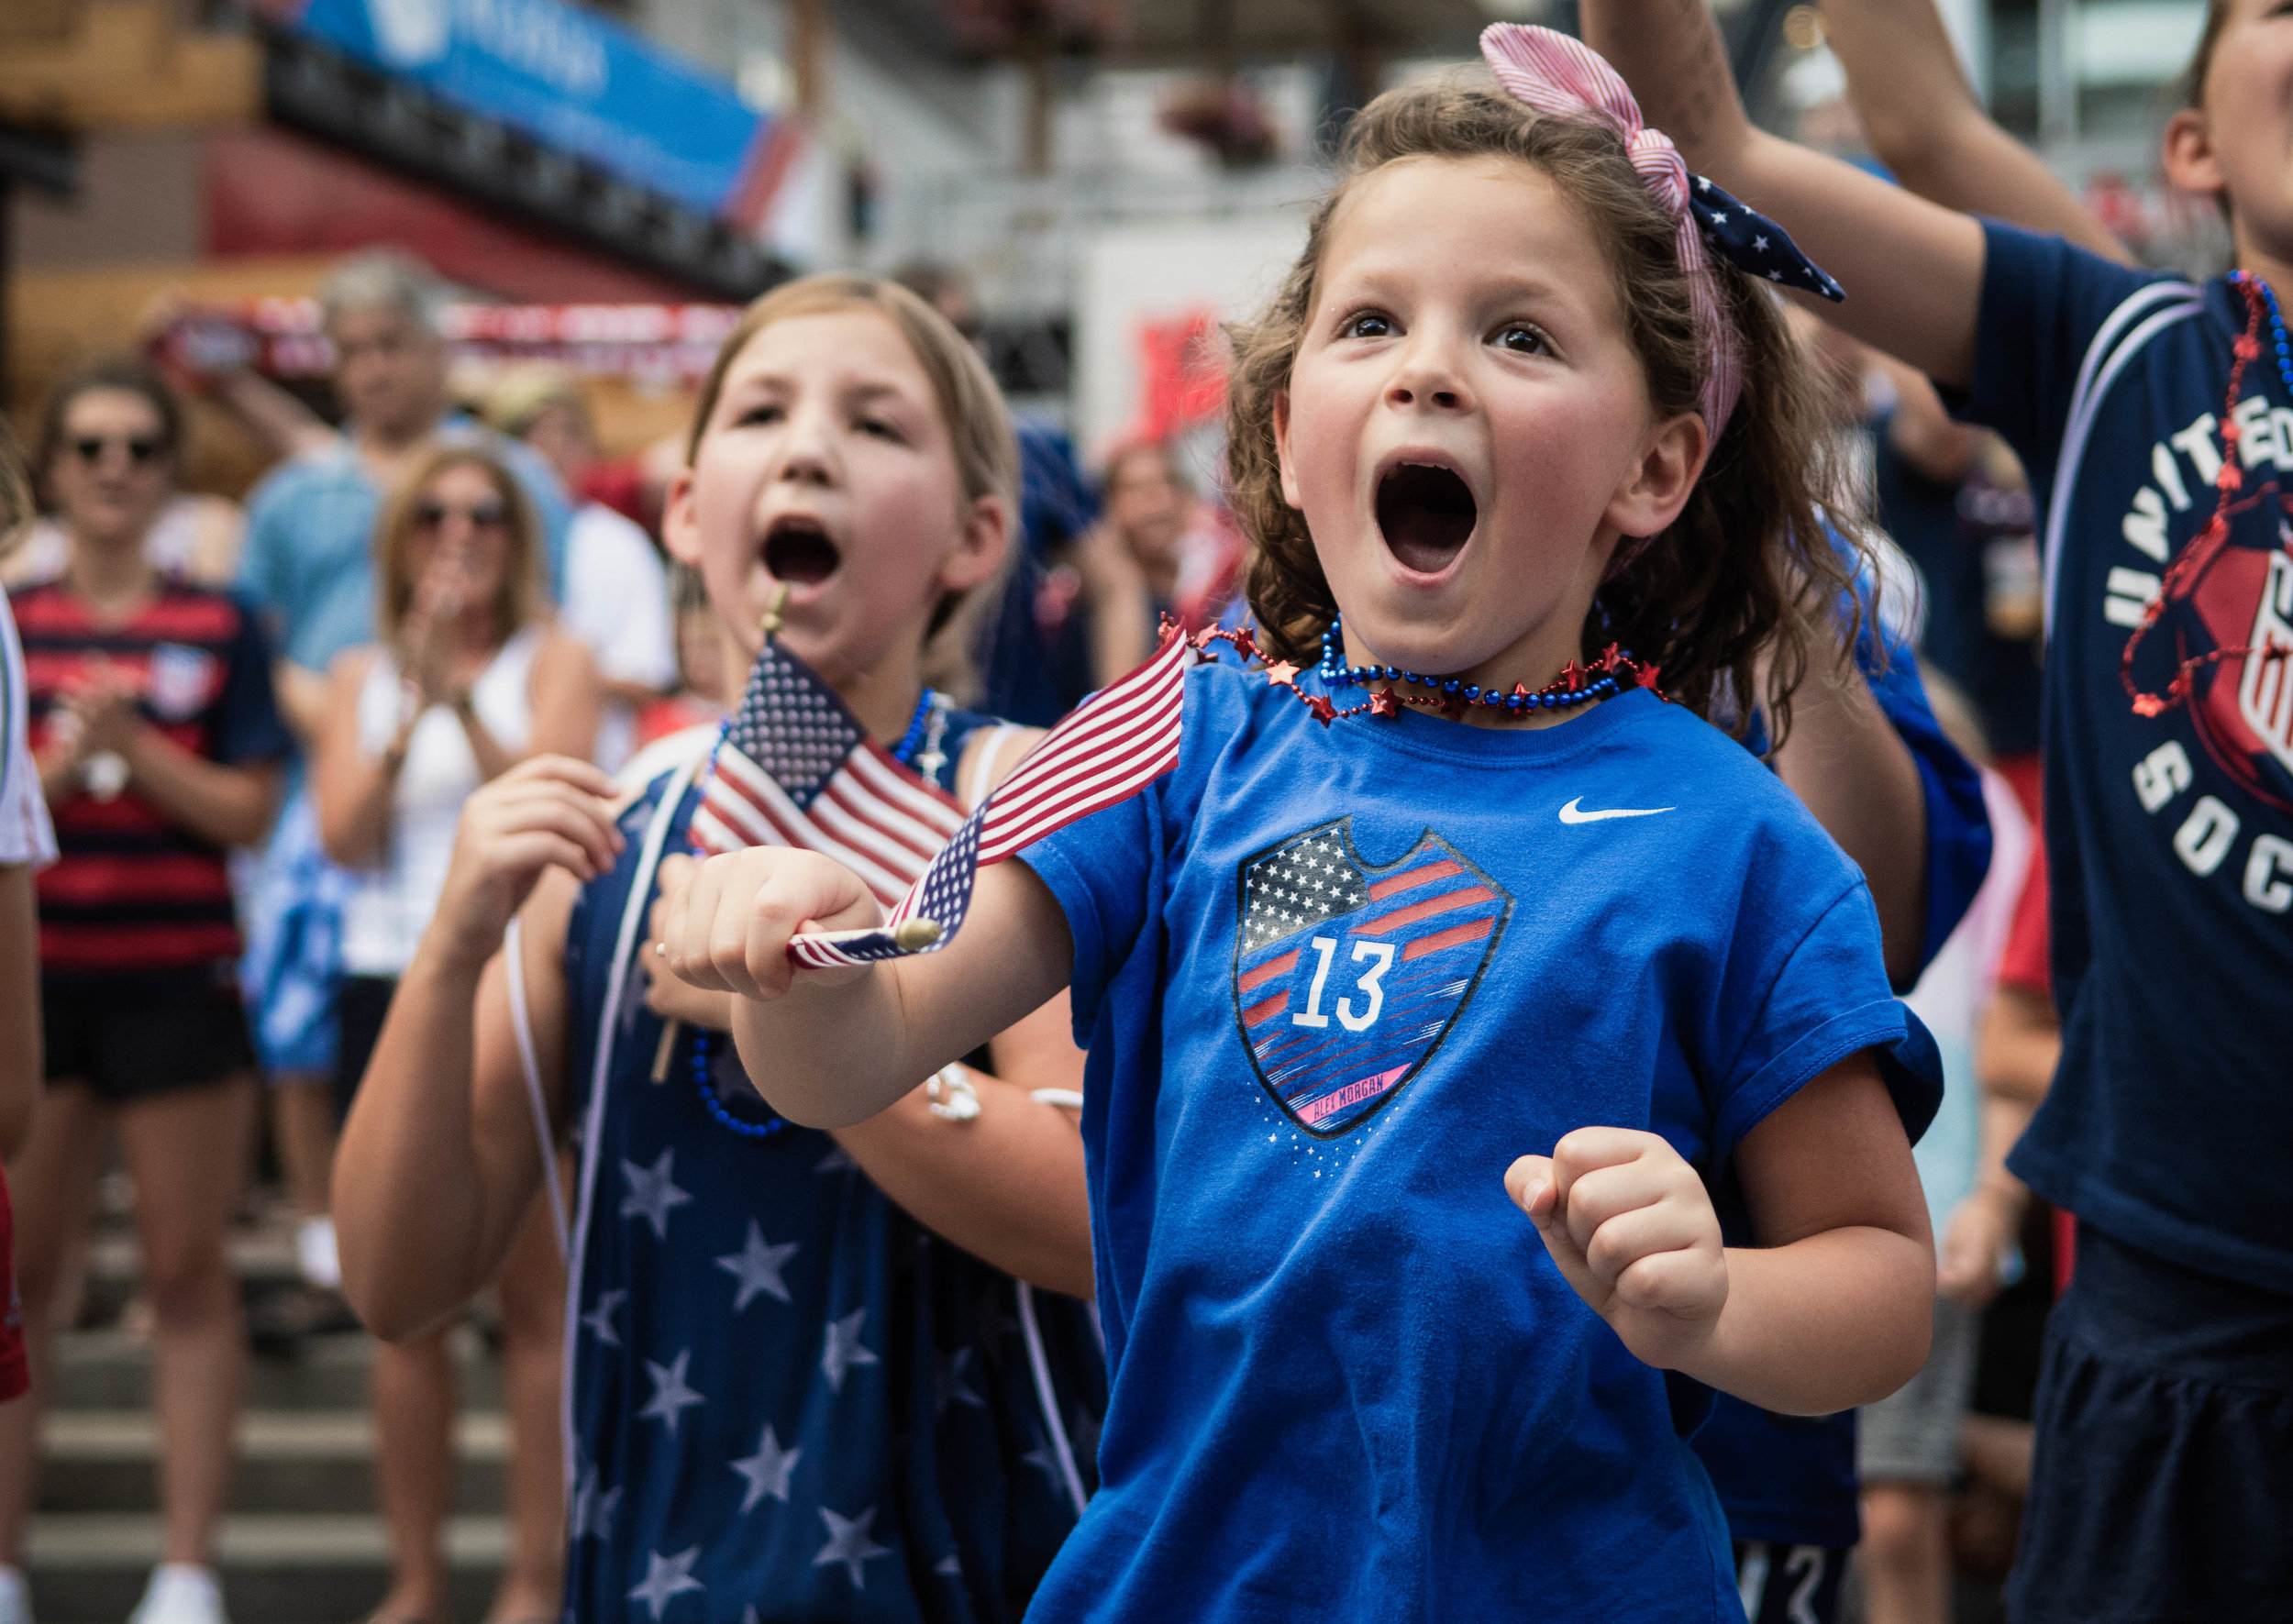 Sporting Kansas City hosts a Women's World Cup watch parties on June 20, 2019, at Kansas City Live! The U.S. Women's National team finished 1st in Group F with 9 points, 3 wins, +18 goal differential, and will face Spain in the round of 16. | Photo by: Noah Riffe